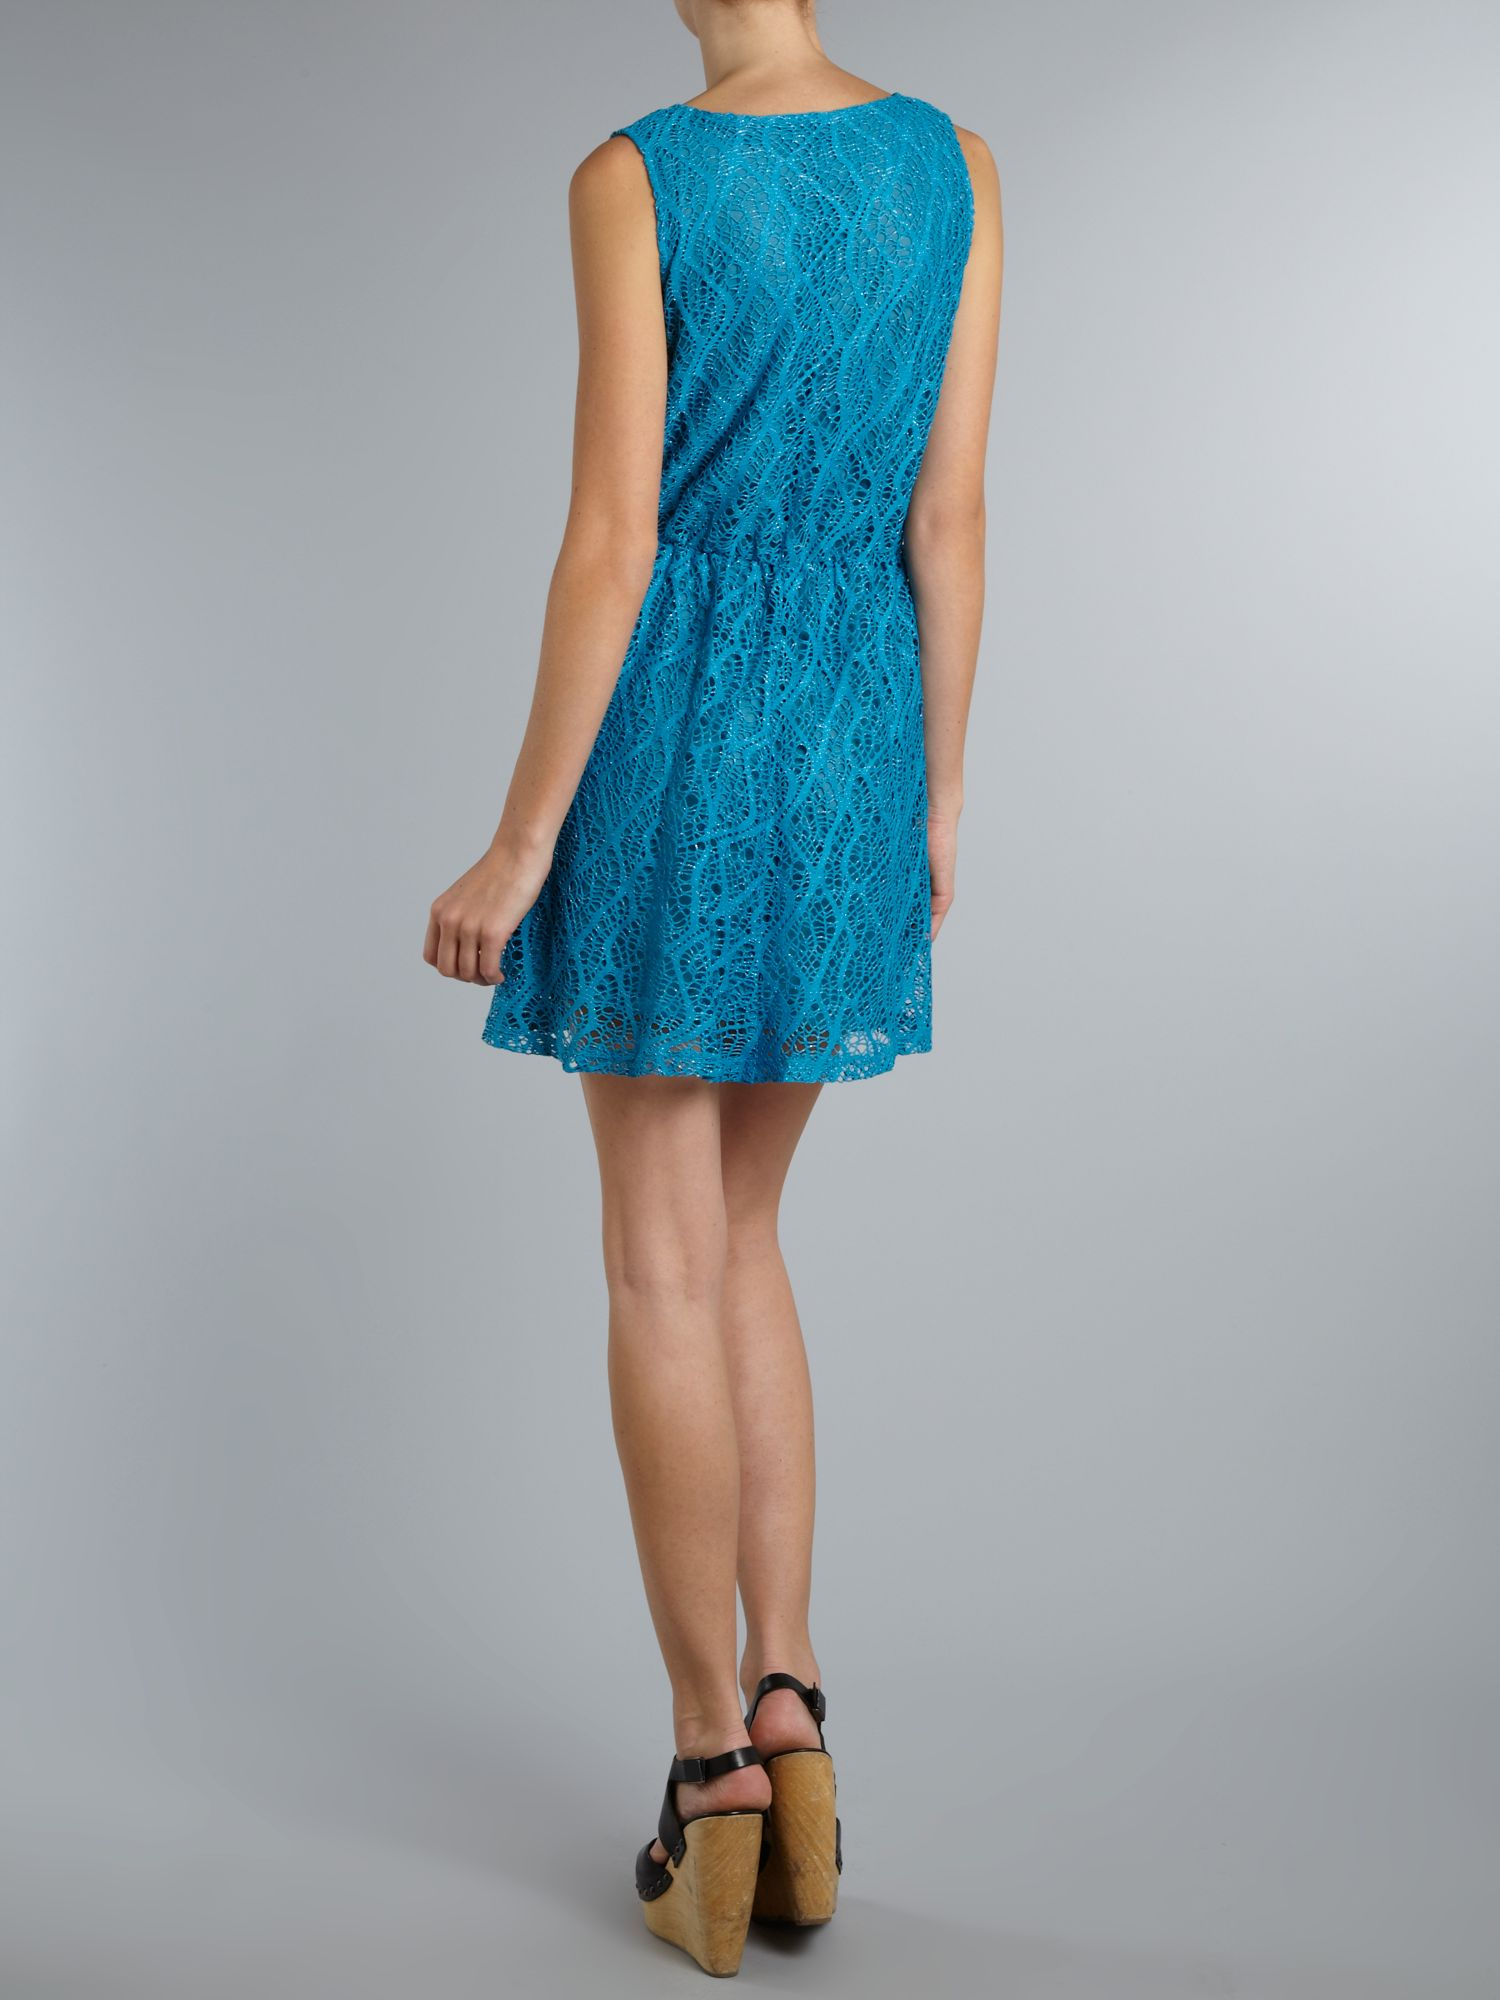 Cobweb knit lace dress